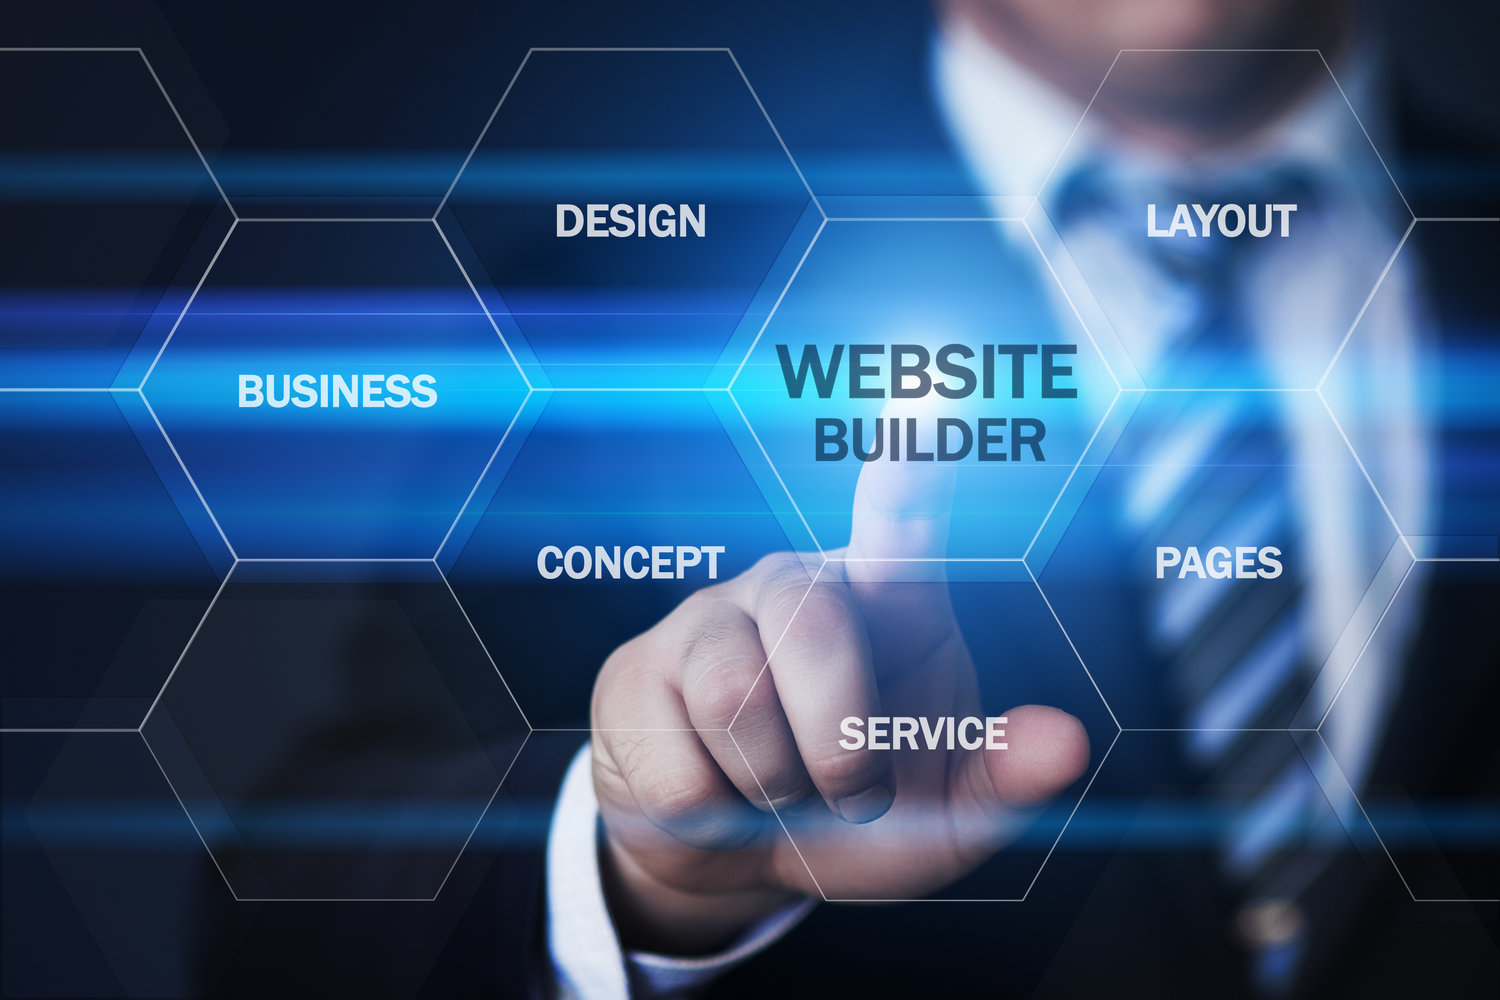 Custom Website Build-out - Creation of Multi-Page Website, Search Engine Optimization (SEO), SSL, Custom Site Design, Style or Theme Design, Campaign launches and Content Generation, Responsive Design, Interactive Multimedia